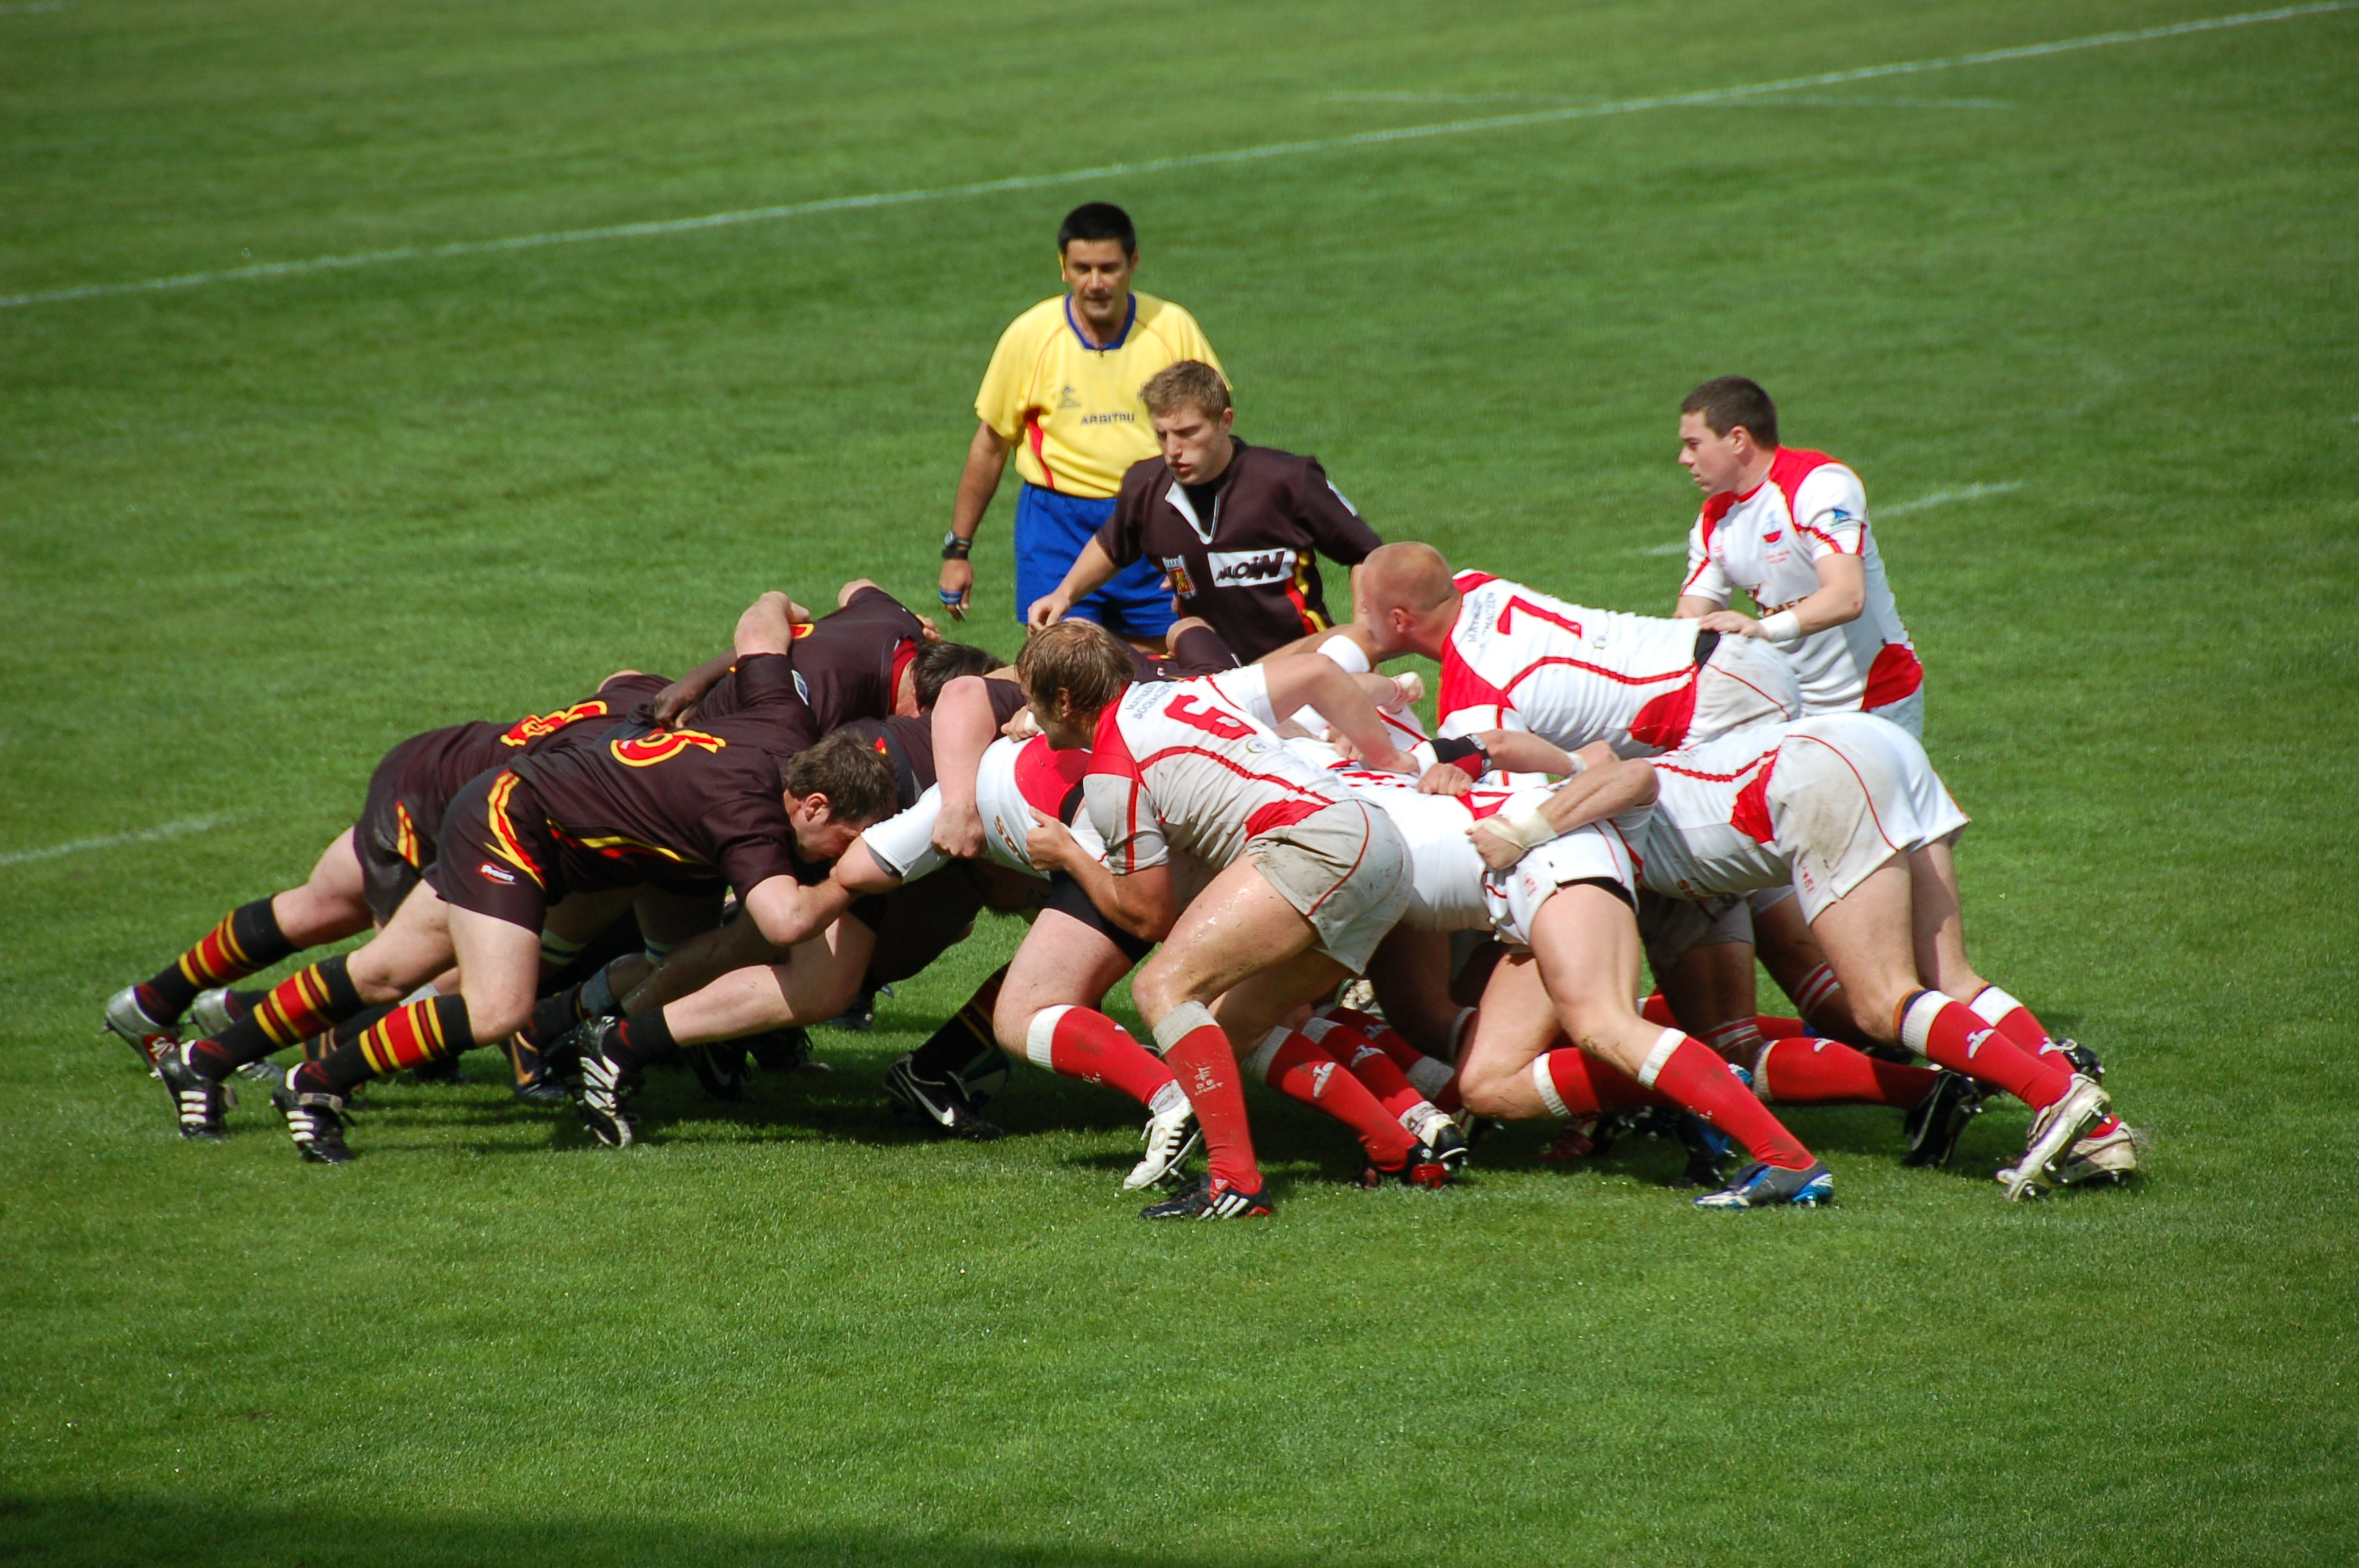 File:Poland vs Belgium 2009 rugby (2).jpg - Wikimedia Commons